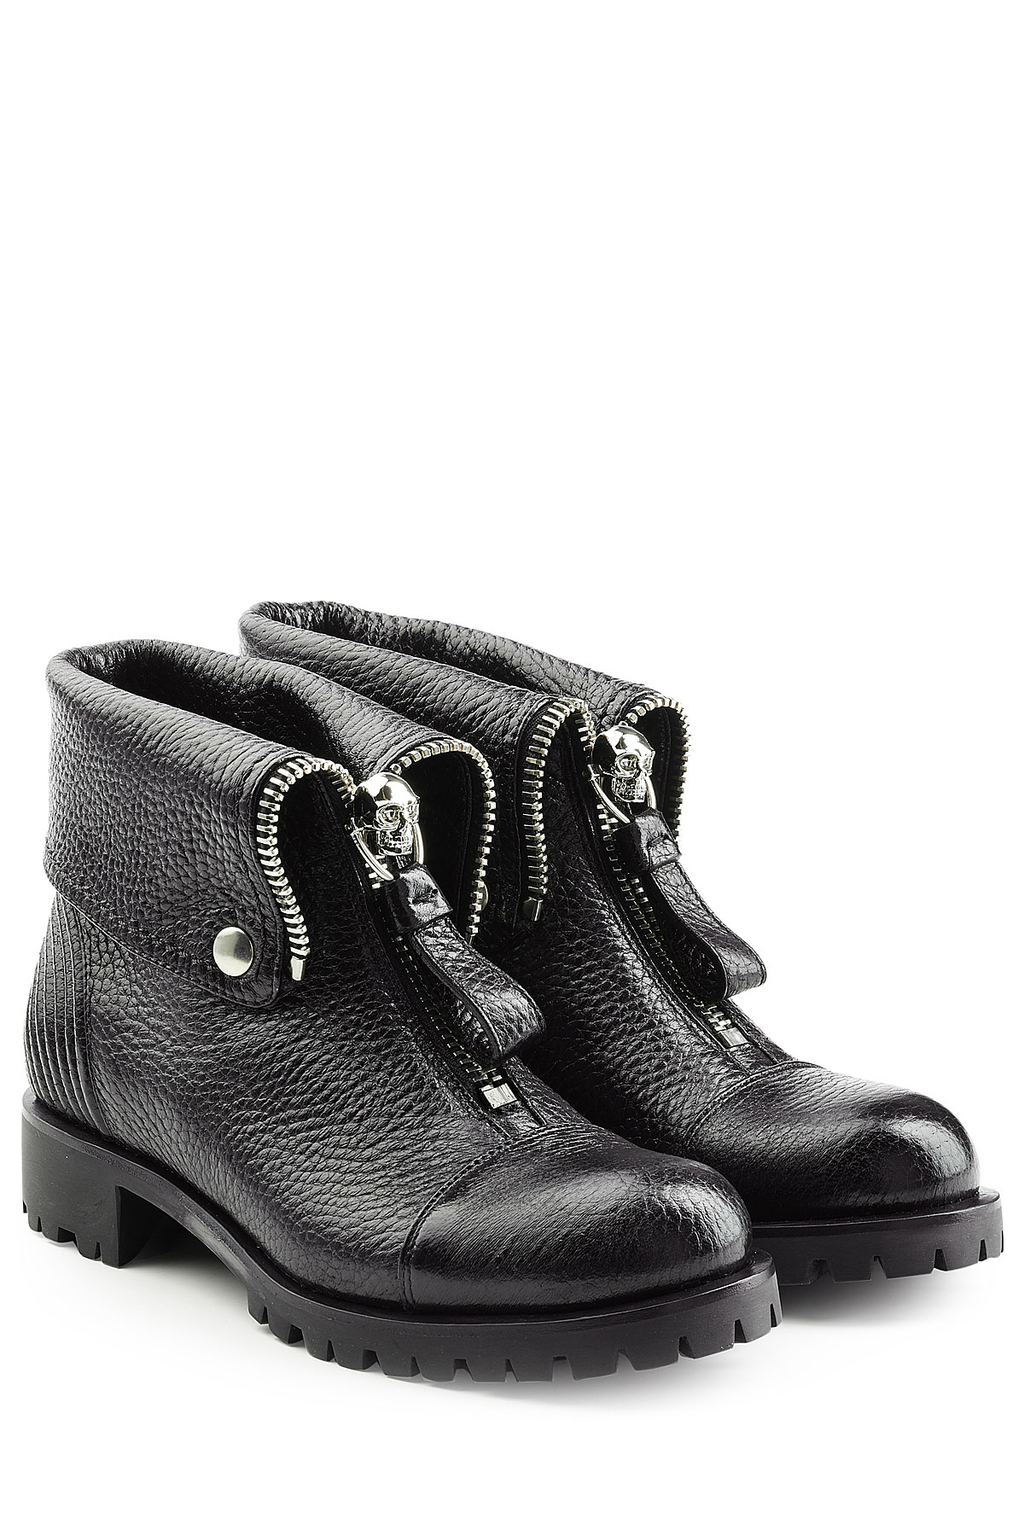 Leather Ankle Boots Black - predominant colour: black; occasions: casual; material: leather; heel height: flat; heel: block; toe: round toe; boot length: ankle boot; style: standard; finish: plain; pattern: plain; season: s/s 2016